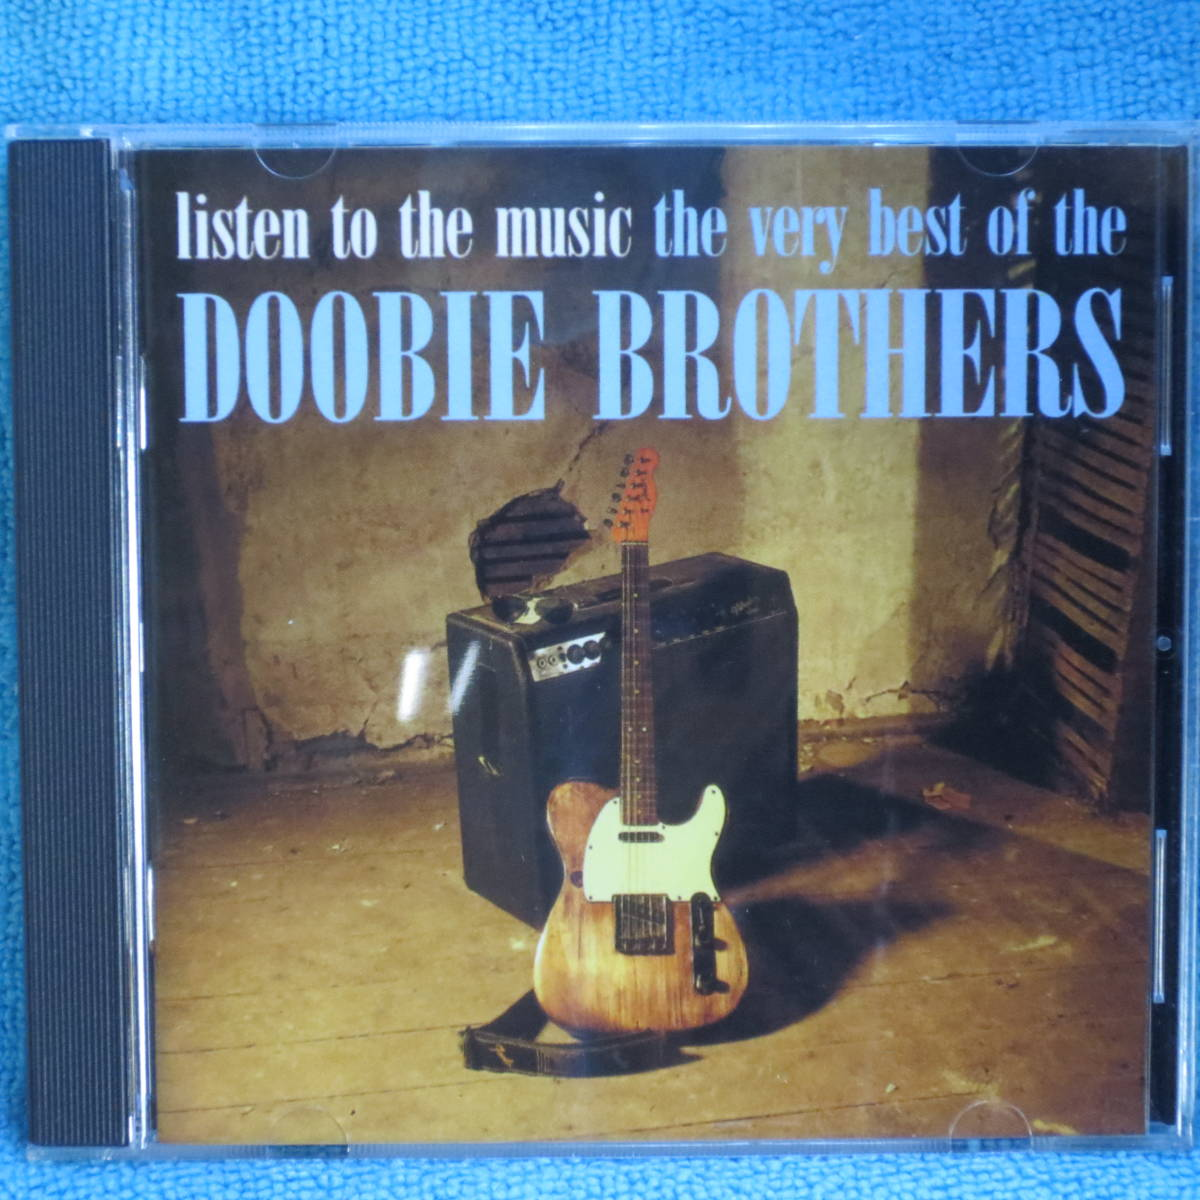 [CD] Listen To The Music ・ The Very Best Of The Doobie Brothers ☆ディスク美品_画像1